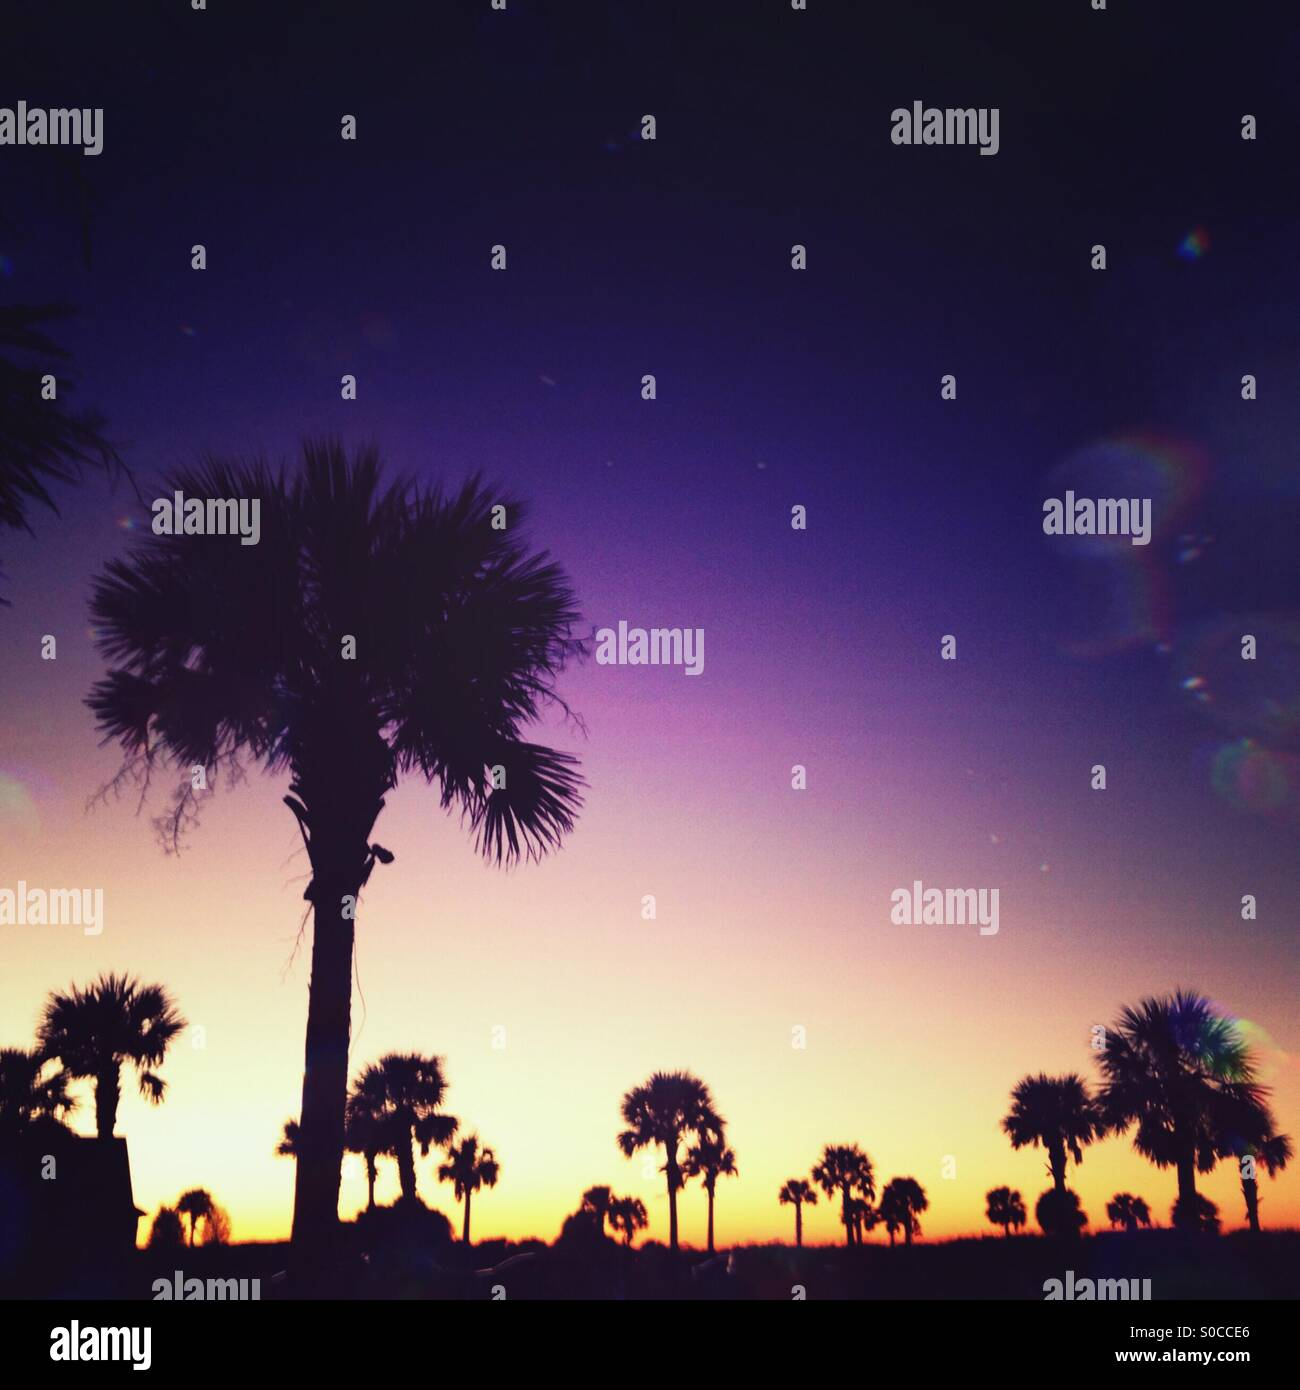 Silhouettes of palmettos stand out against the sky just after sunset on Kiawah Island, SC. - Stock Image